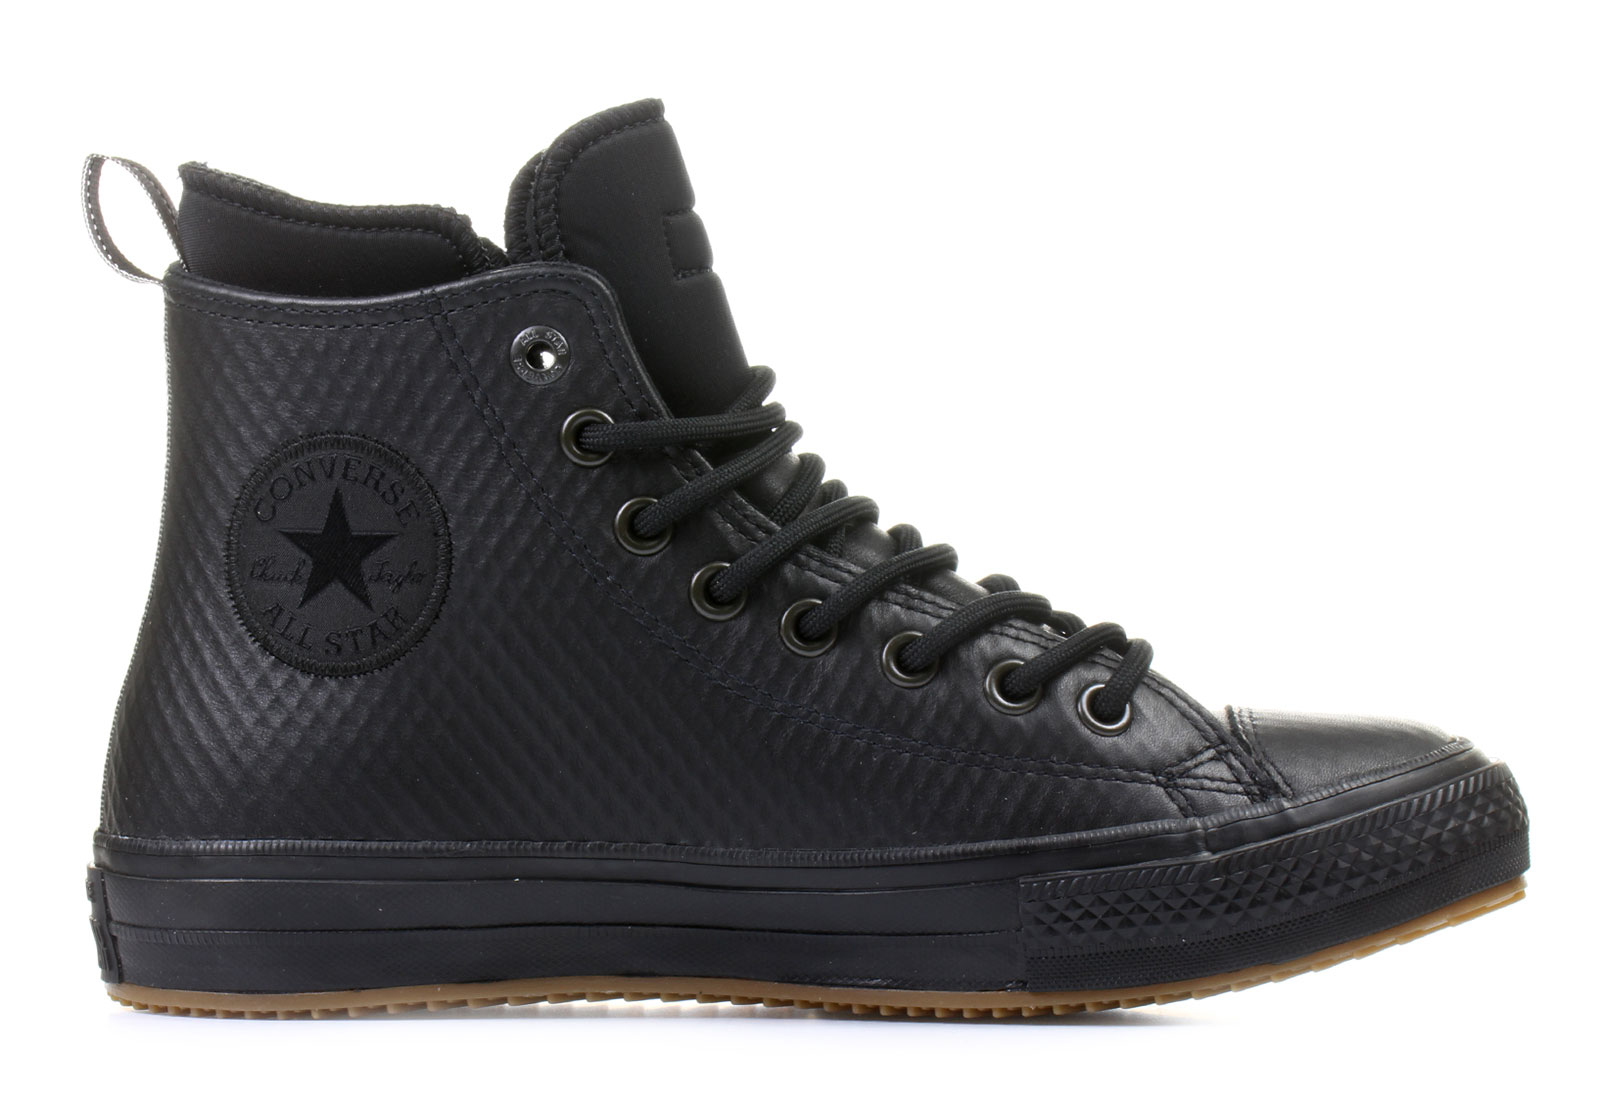 converse sneakers chuck taylor all star ii boot. Black Bedroom Furniture Sets. Home Design Ideas